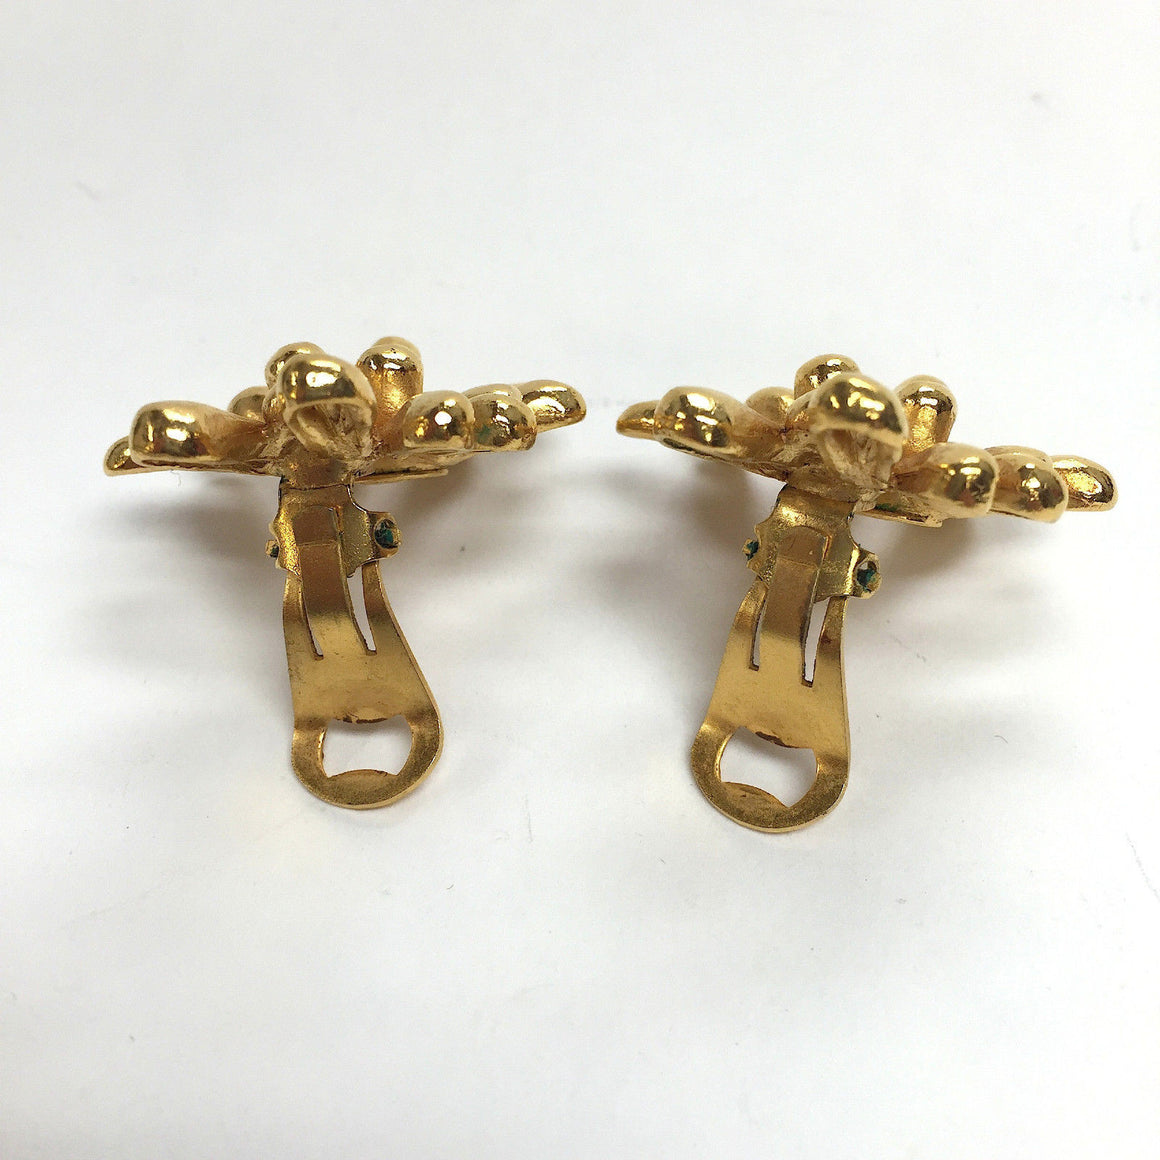 bisbiz.com CHRISTIAN LACROIX   Vintage Gilt Metal Anemone Flower Clip-on Statement Earrings - Bis Luxury Resale